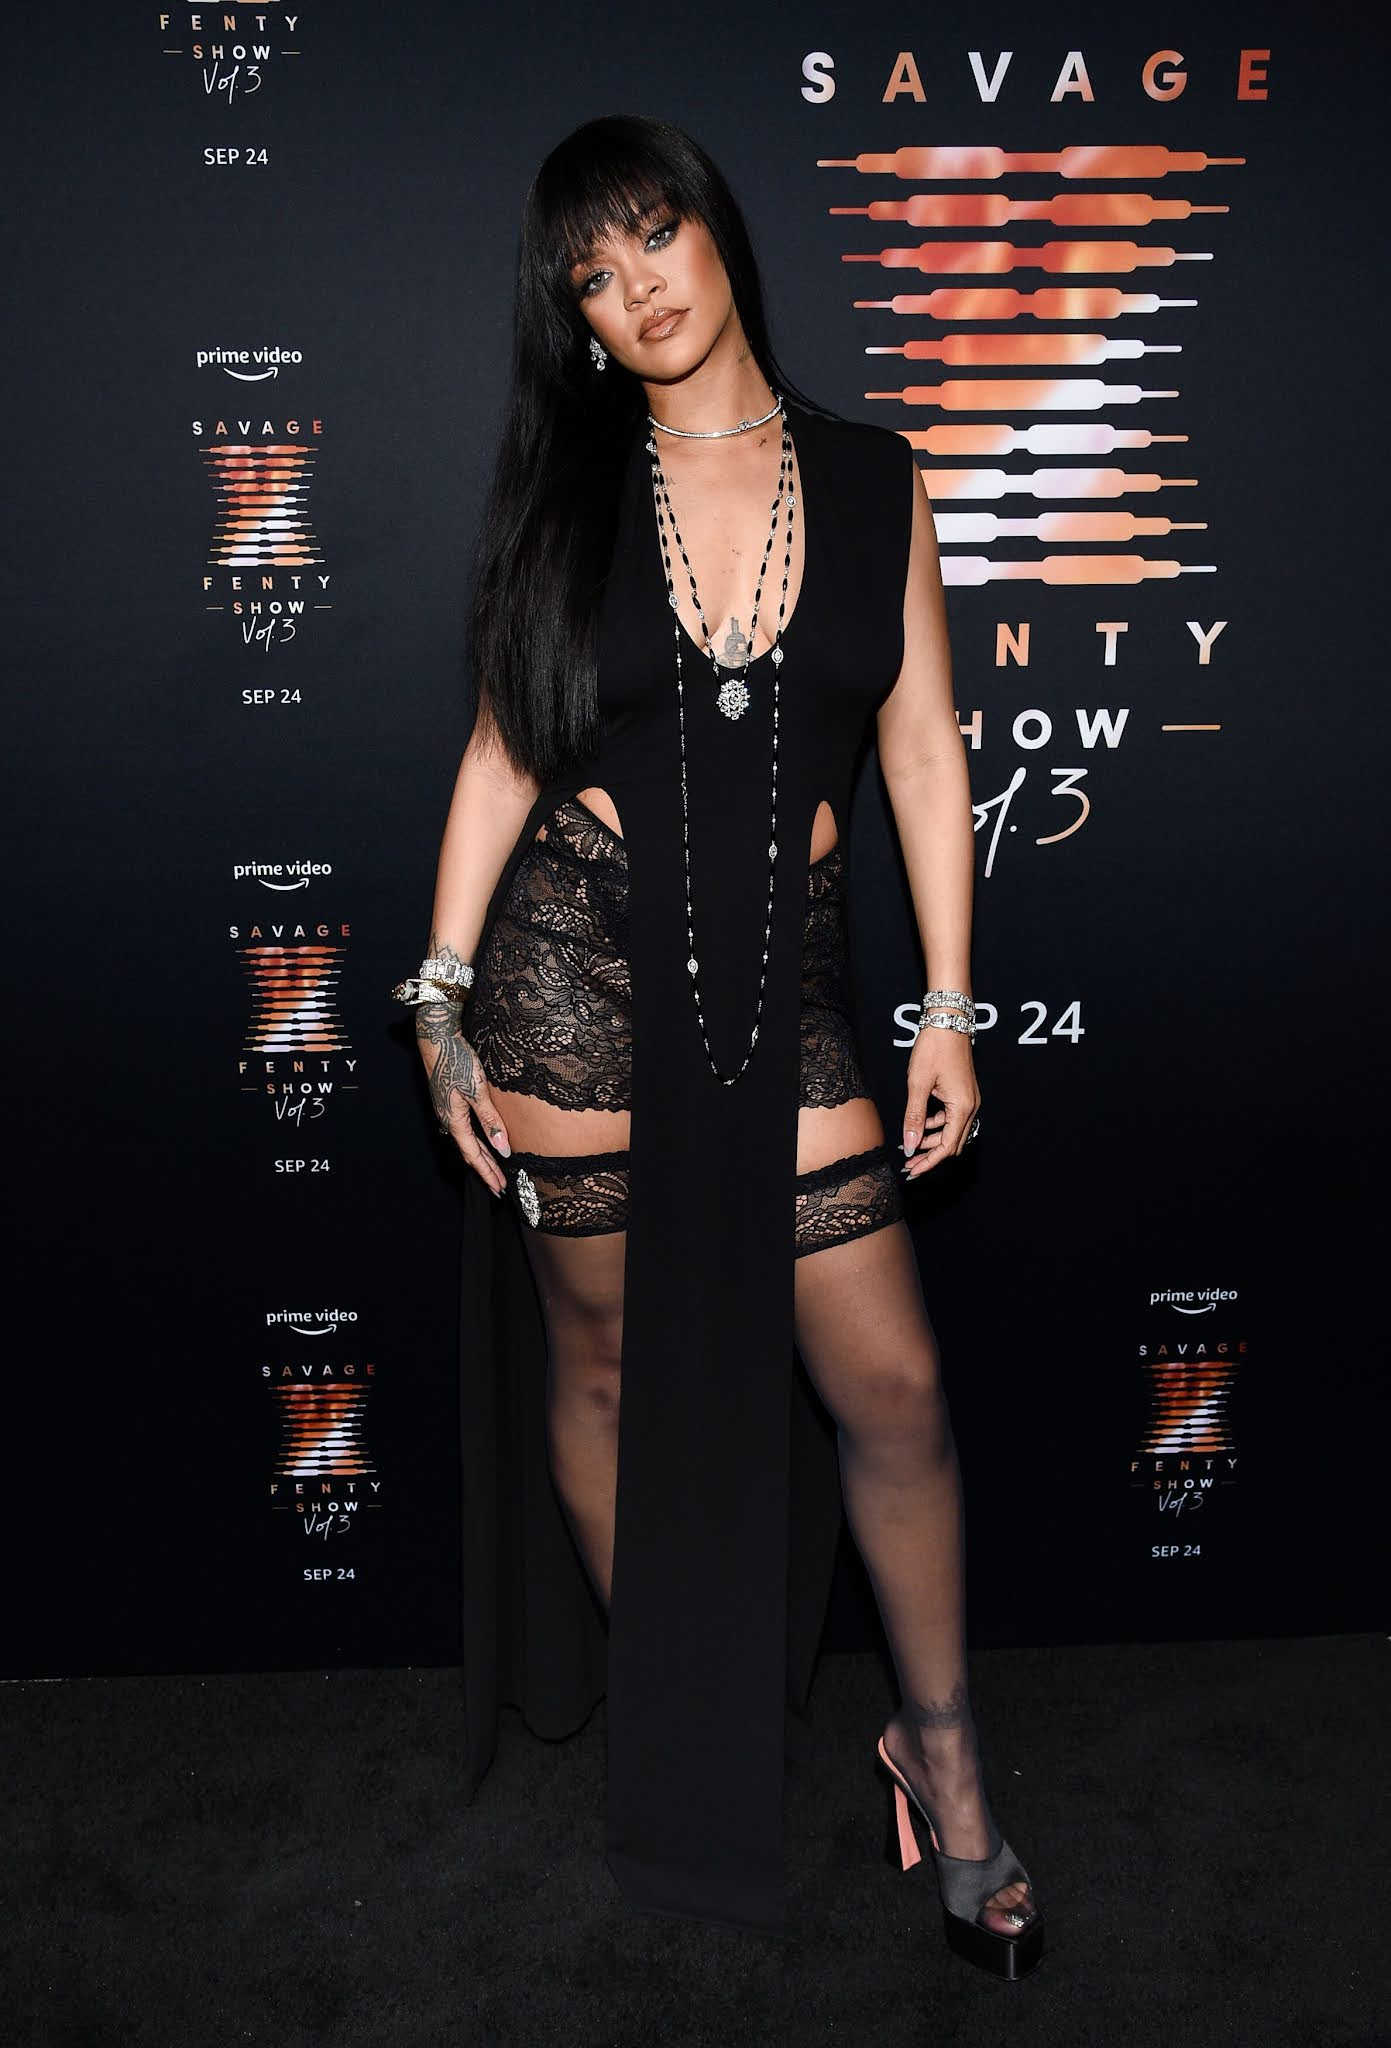 Rihanna at the Savage x Fenty Show Vol. 3 premiere in New York